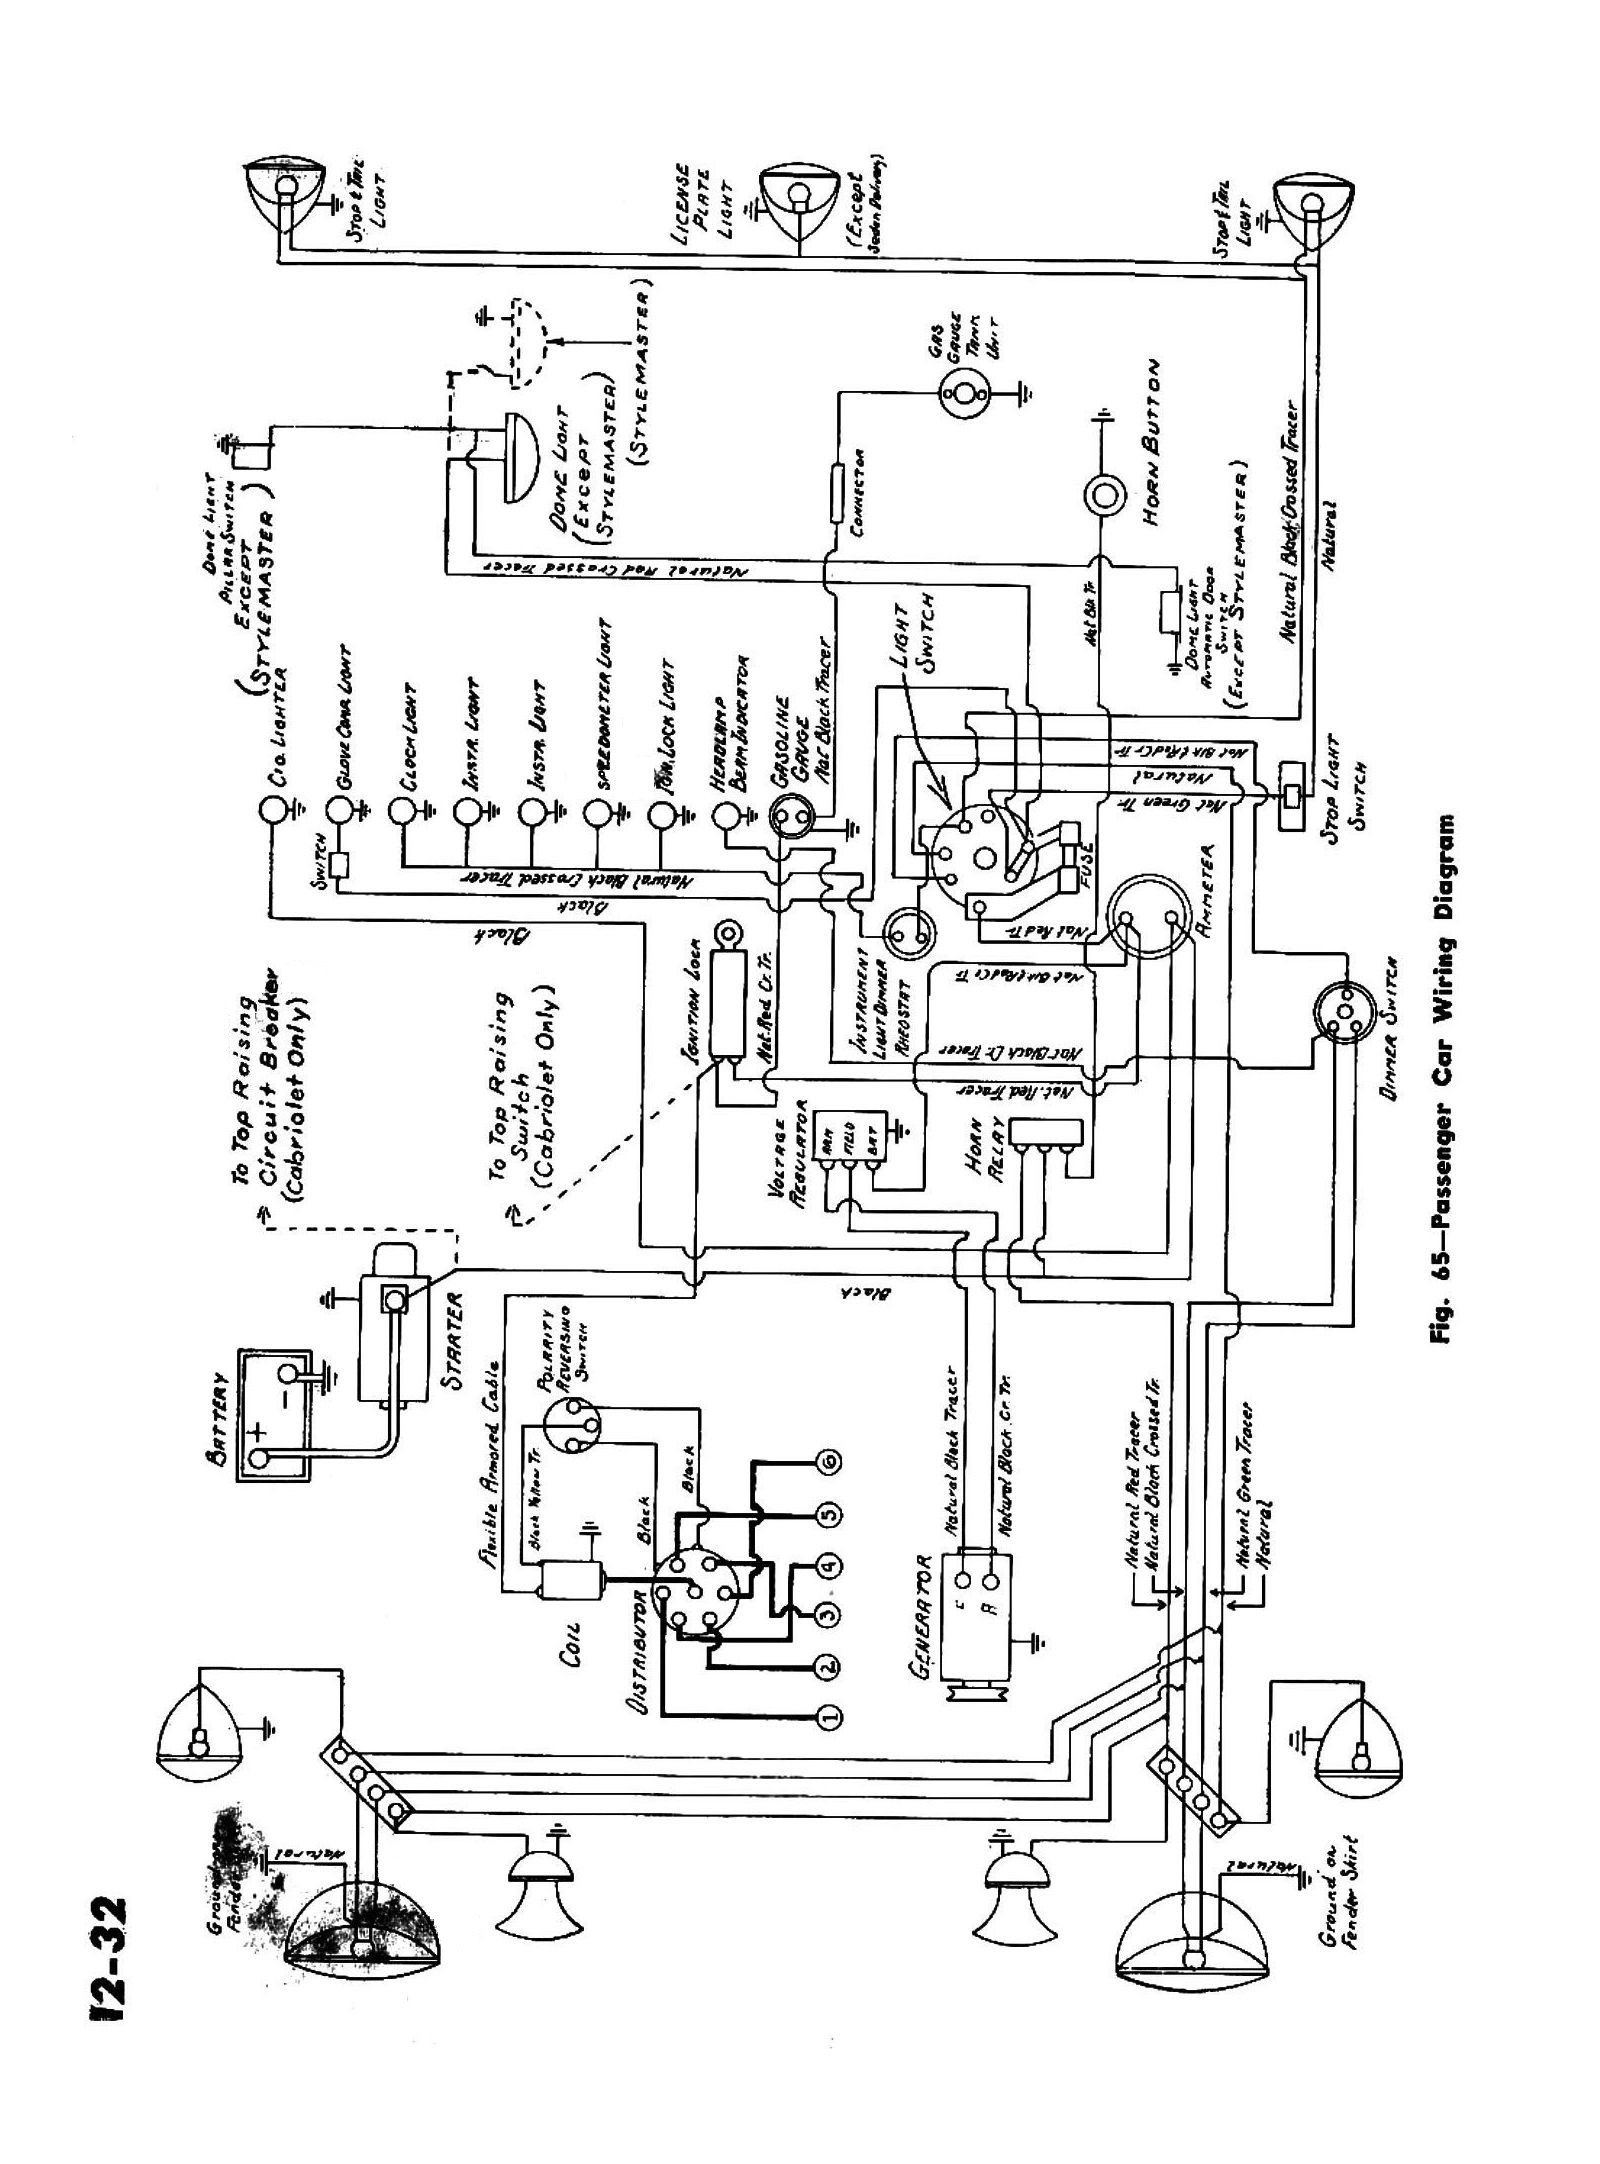 wiring diagrams 1998 auto car data wiring diagram Vehicle Wiring Diagrams